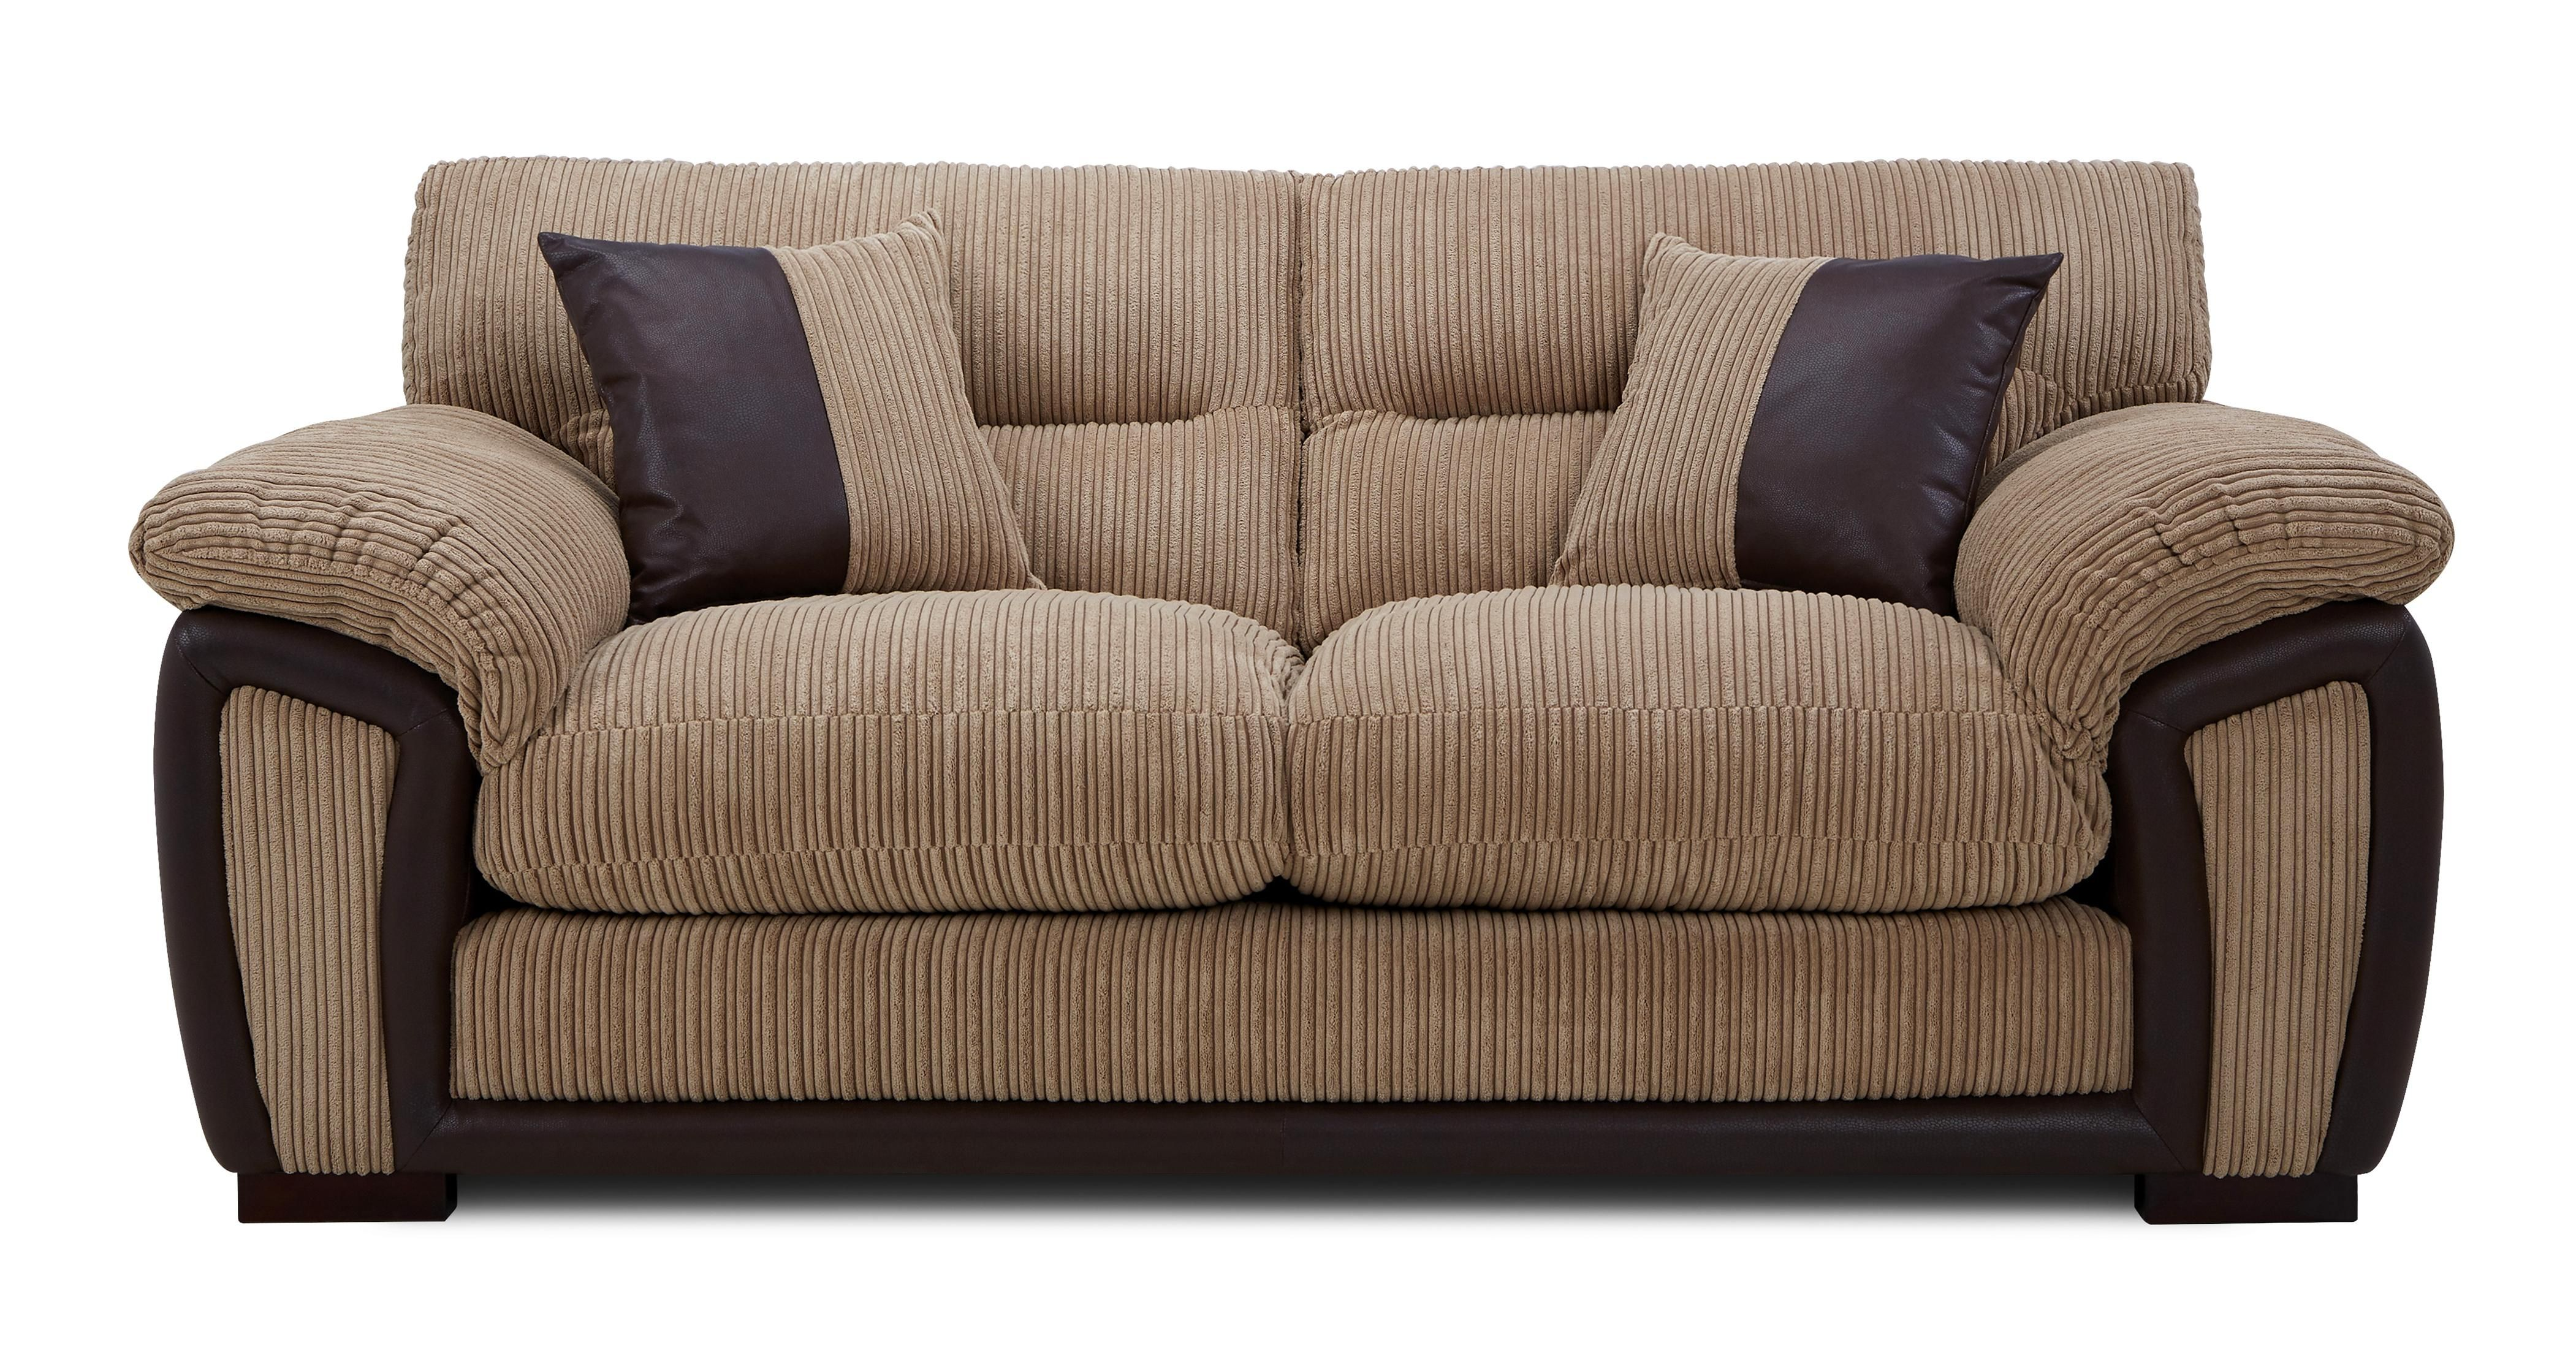 Dfs 3 Seater Sofa Barlow In 2020 Fabric Sofa Bed Dfs Sofa Sofa - Dfs Garden Furniture Clearance